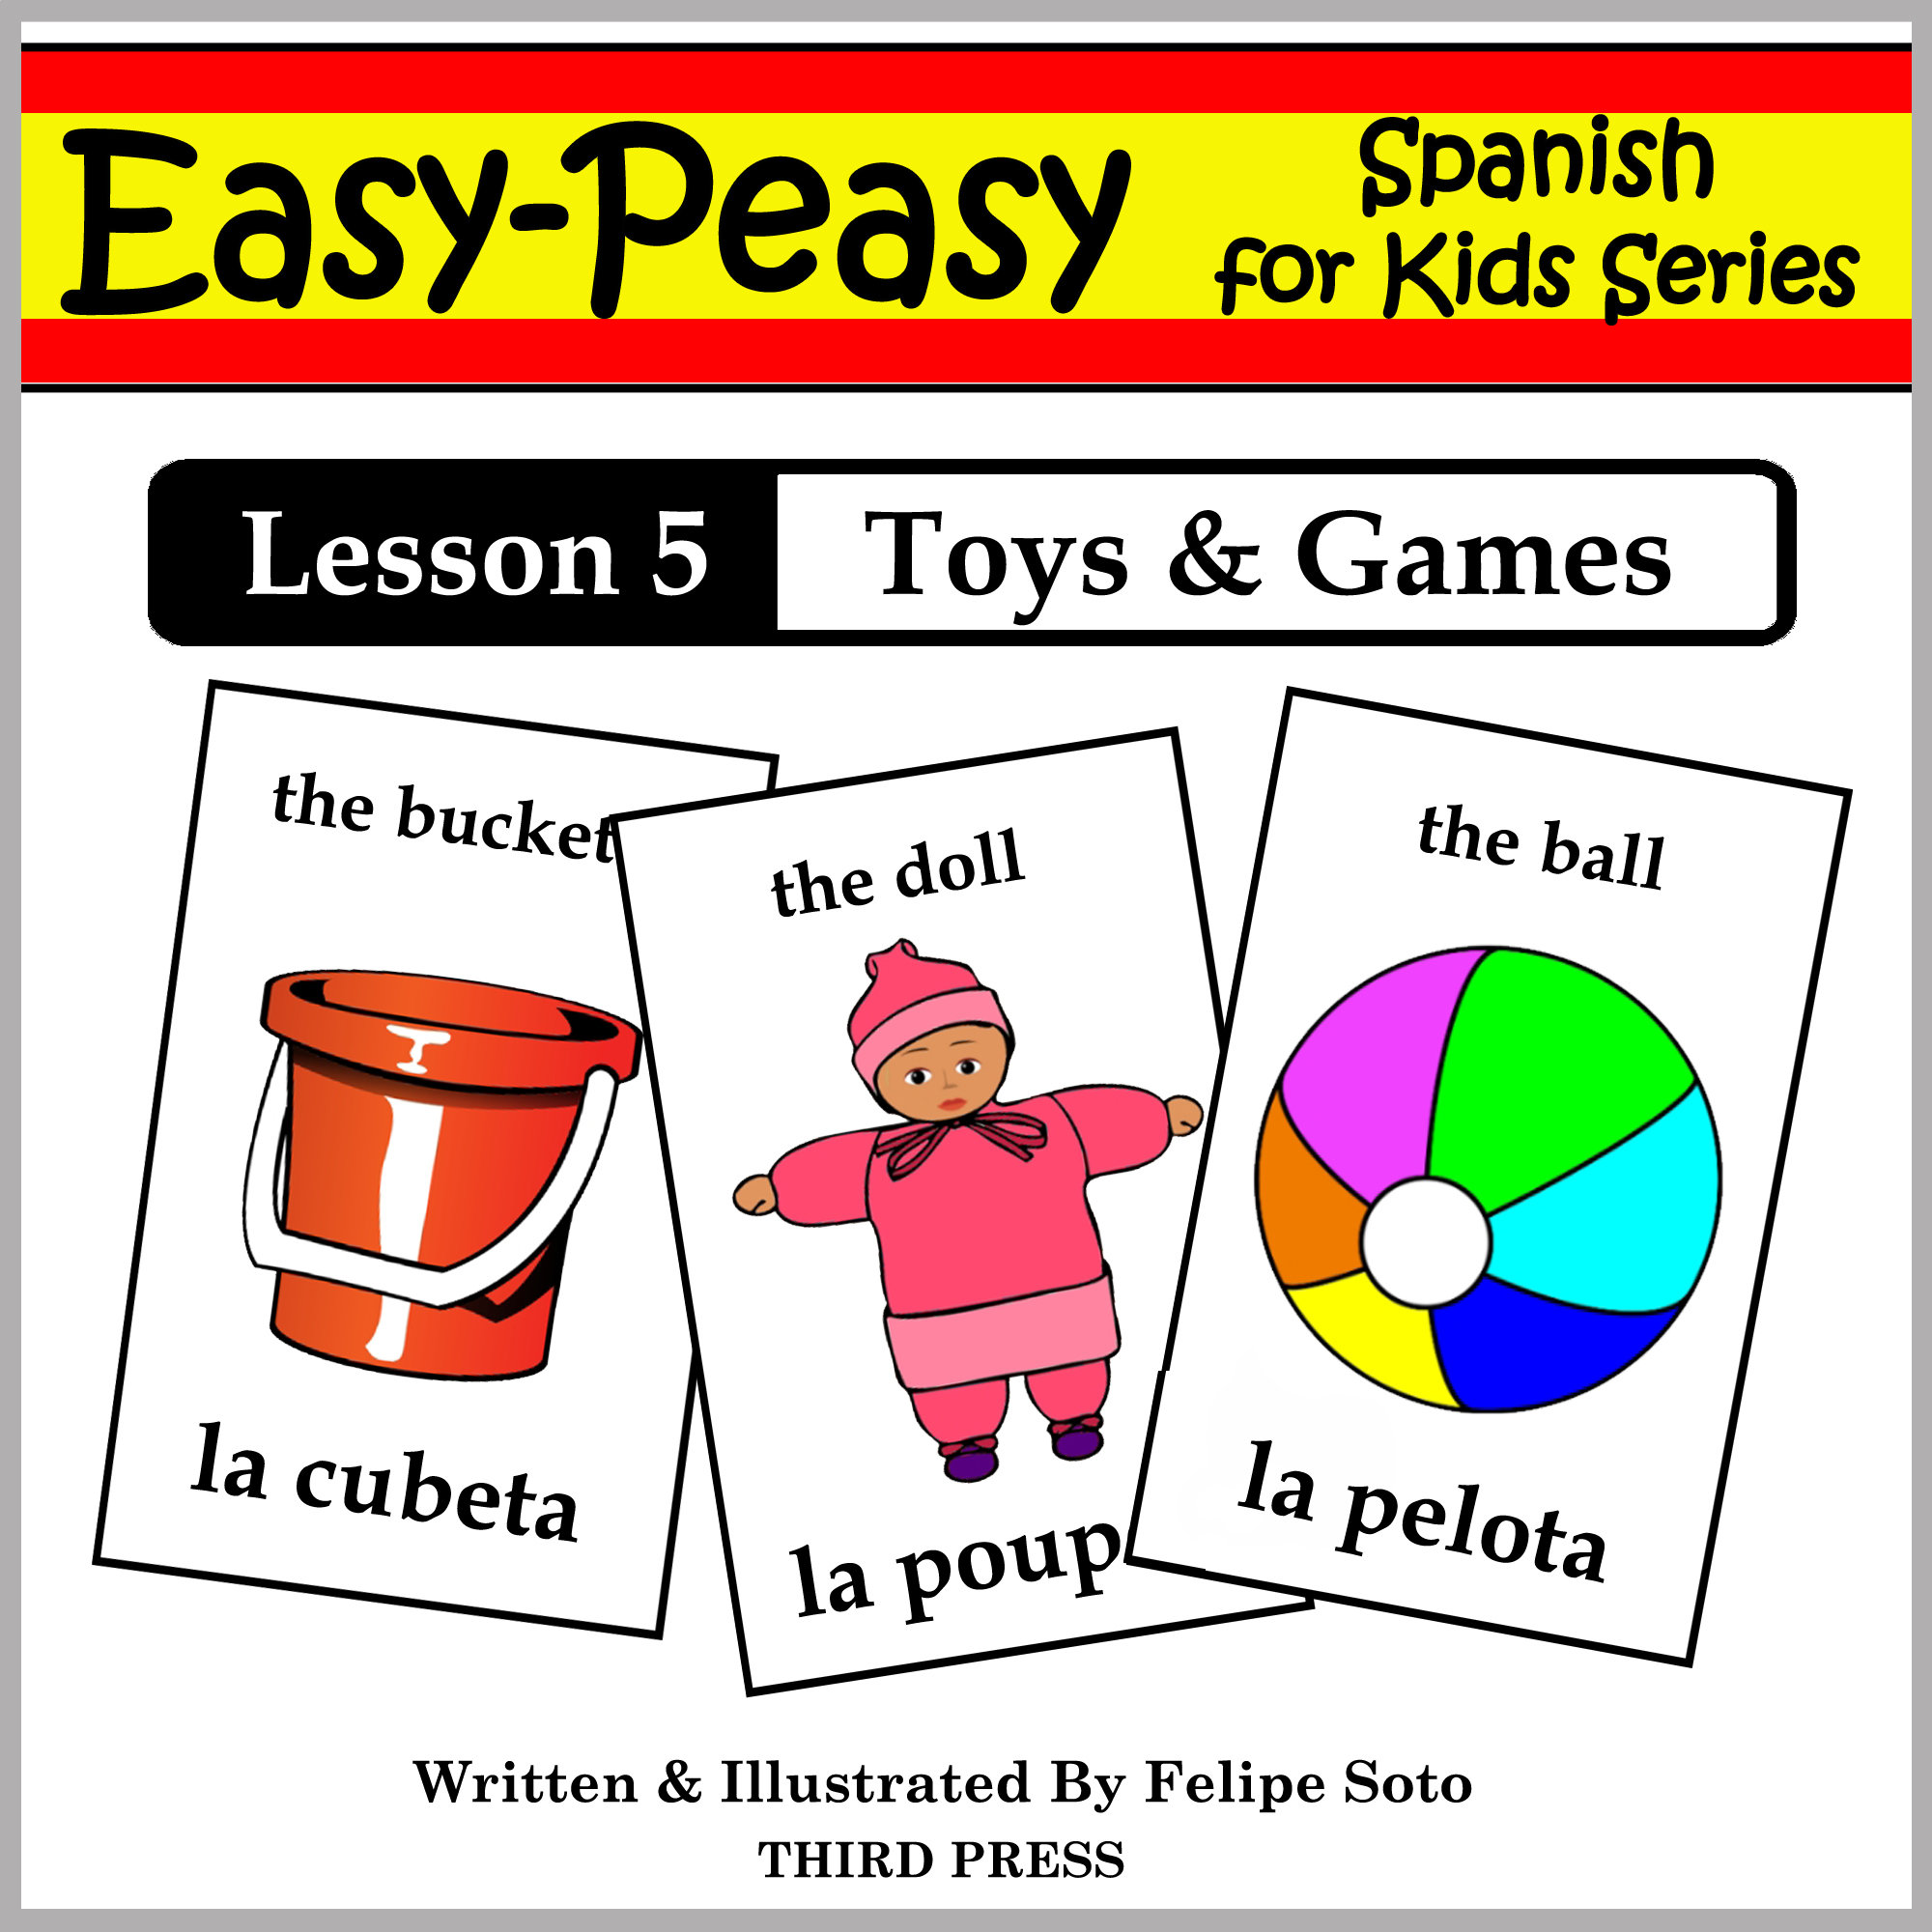 Spanish Lesson 5: Toys & Games